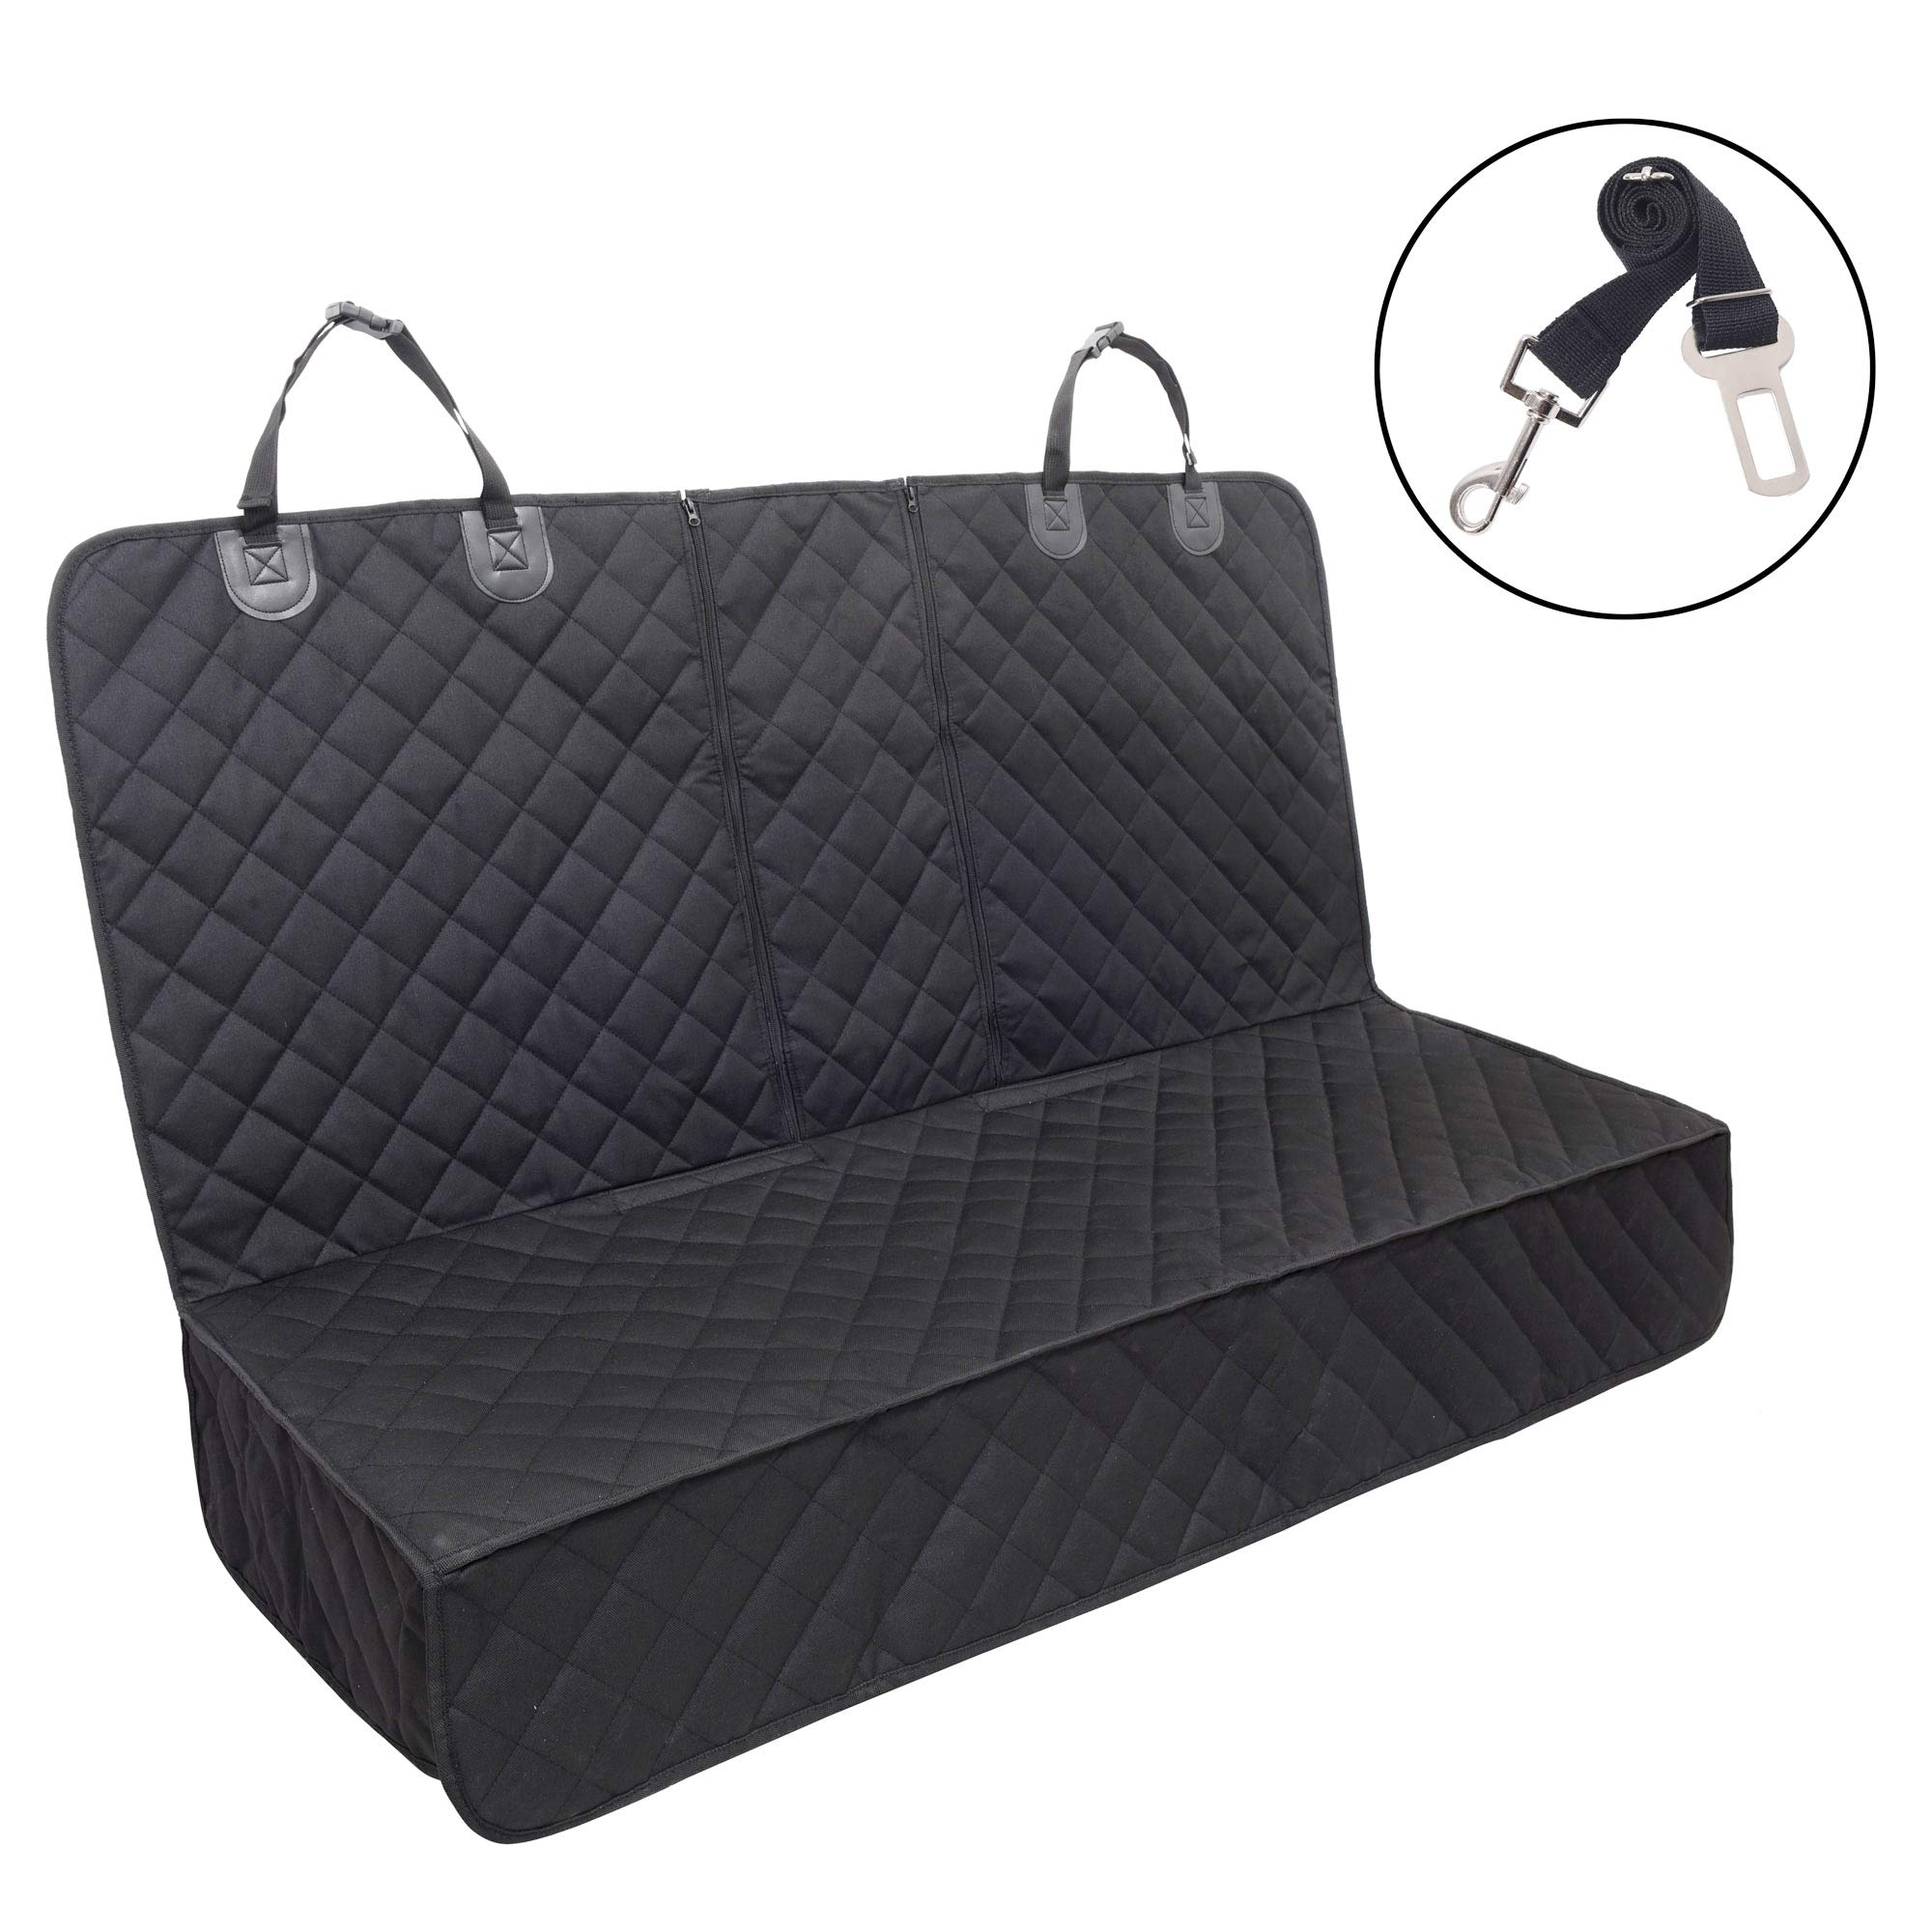 Dog Car Seat Cover ,Waterproof Pet Car Rear Seat Protector Compatible for Central Armrest,Suitable for Most Cars, SUV,Trucks by JSTHT